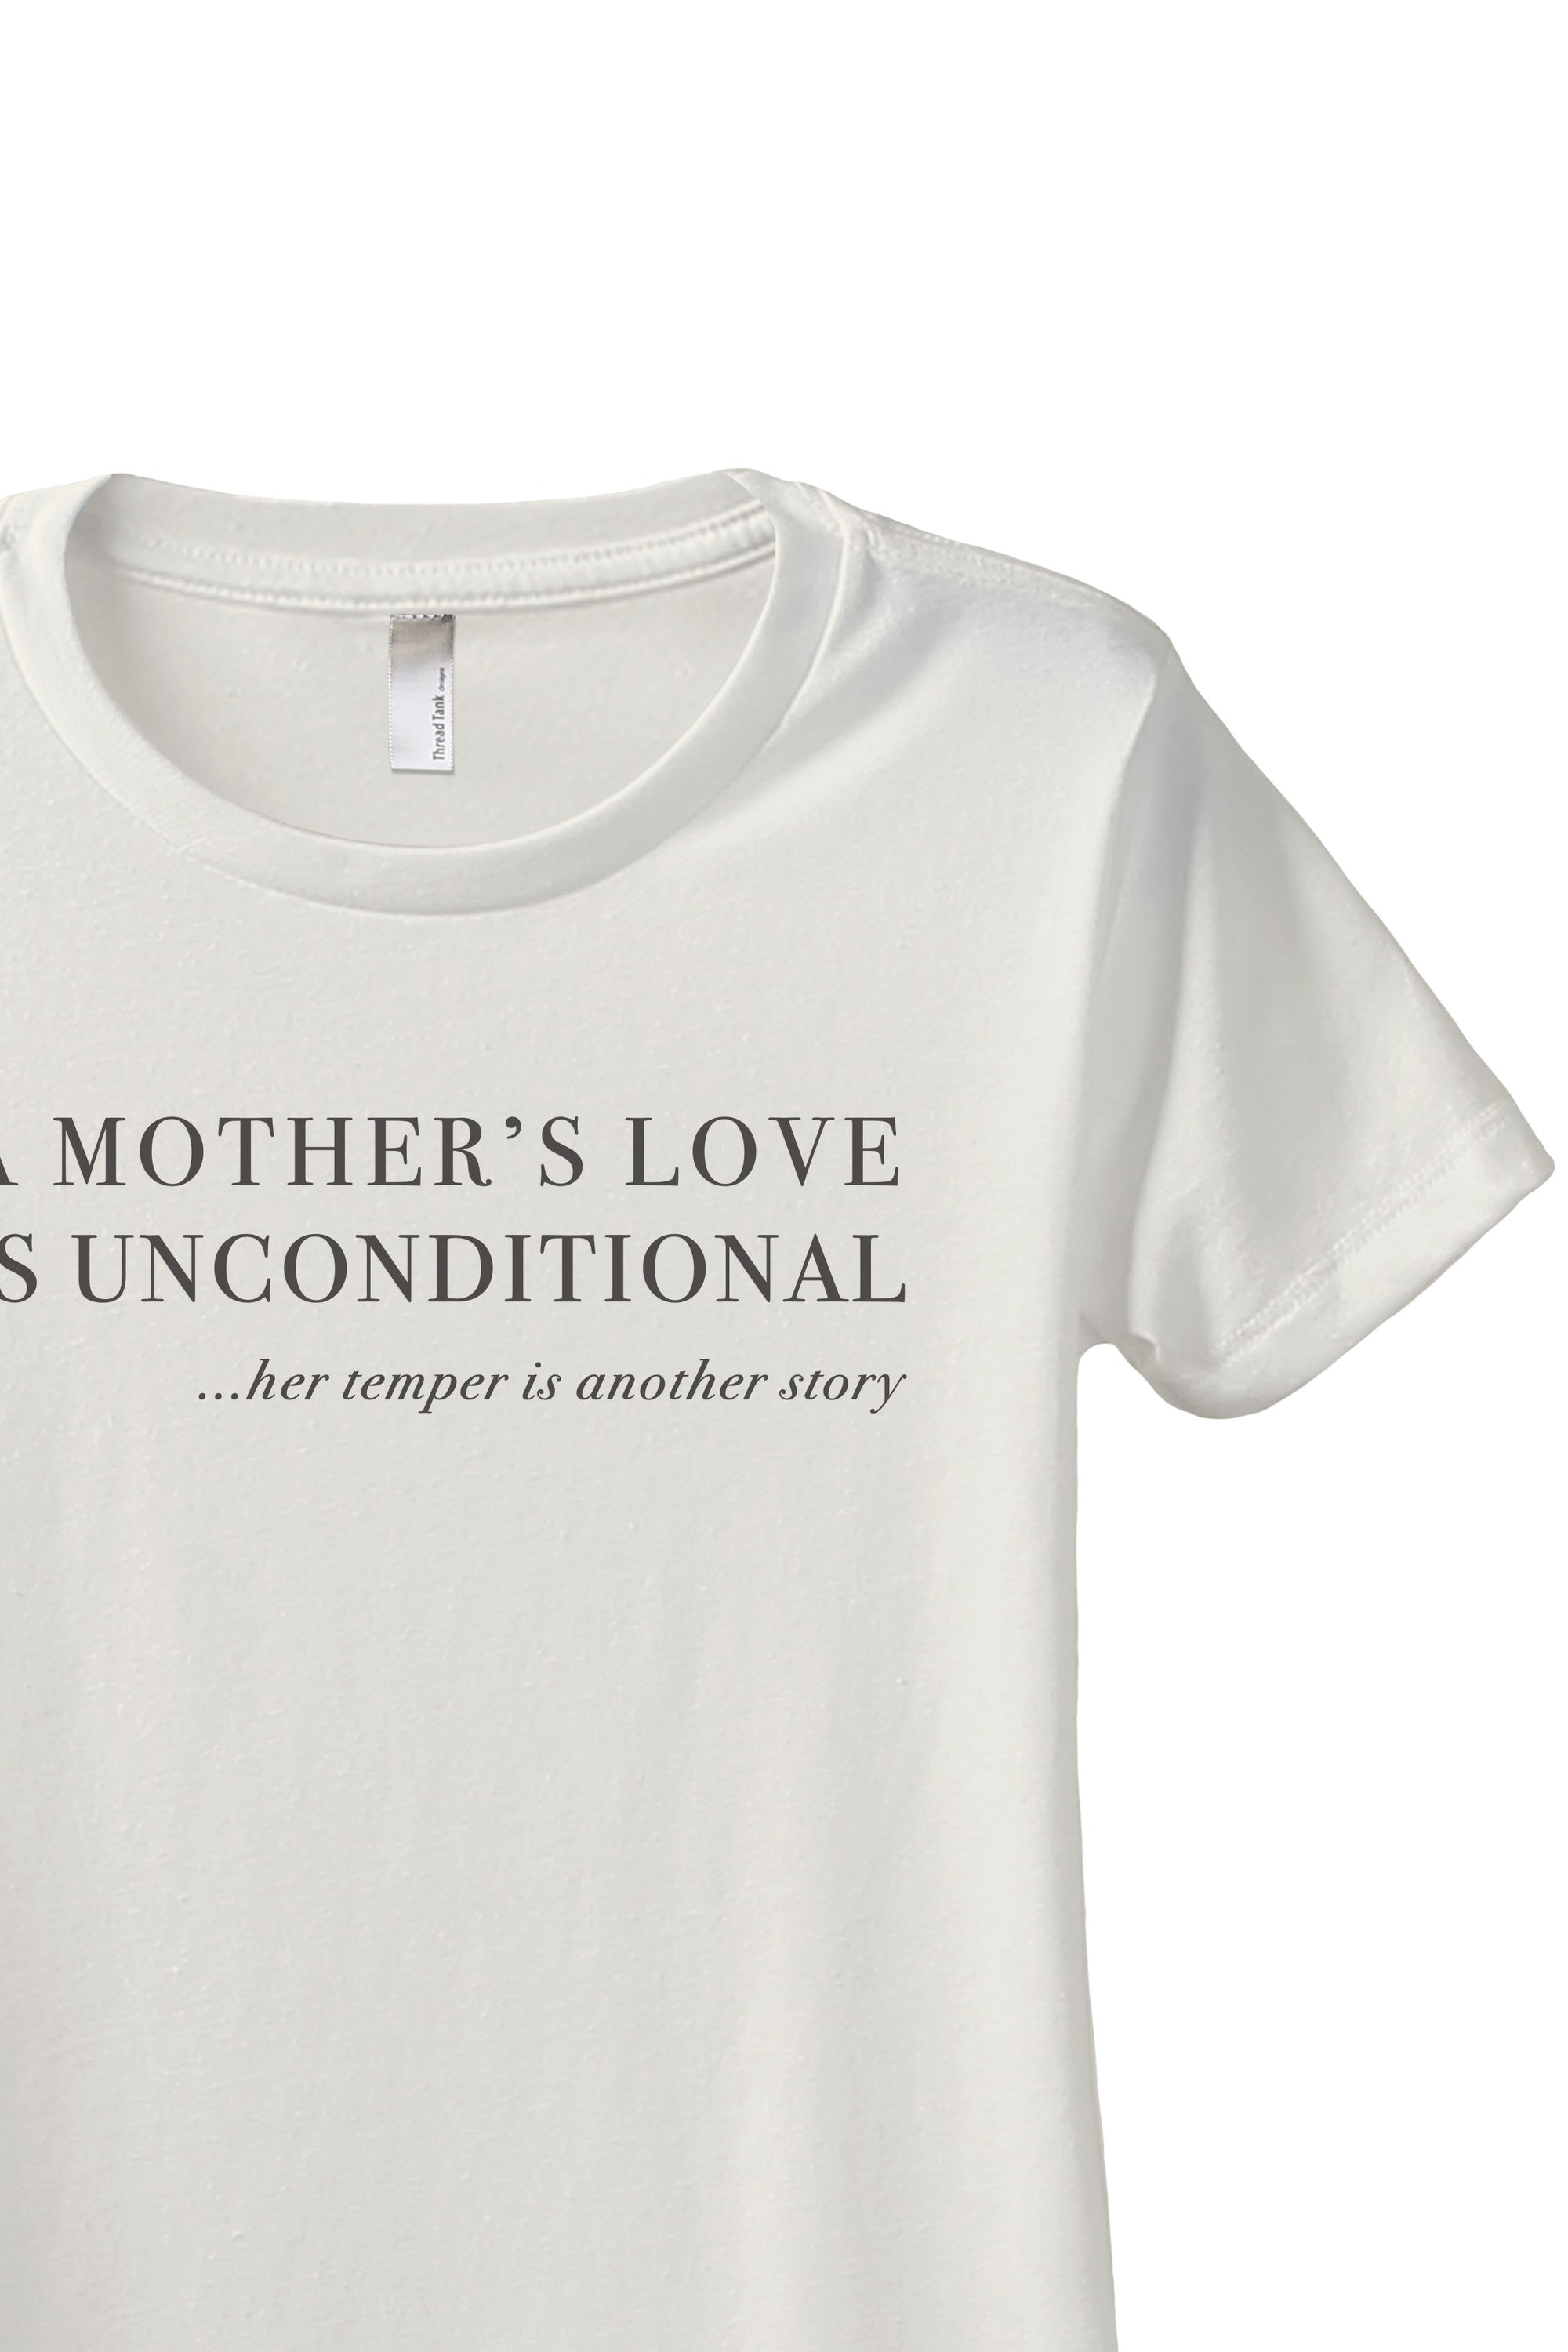 A Mother's Love Is Unconditional Women's Relaxed Crewneck T-Shirt Top Tee Vintage White